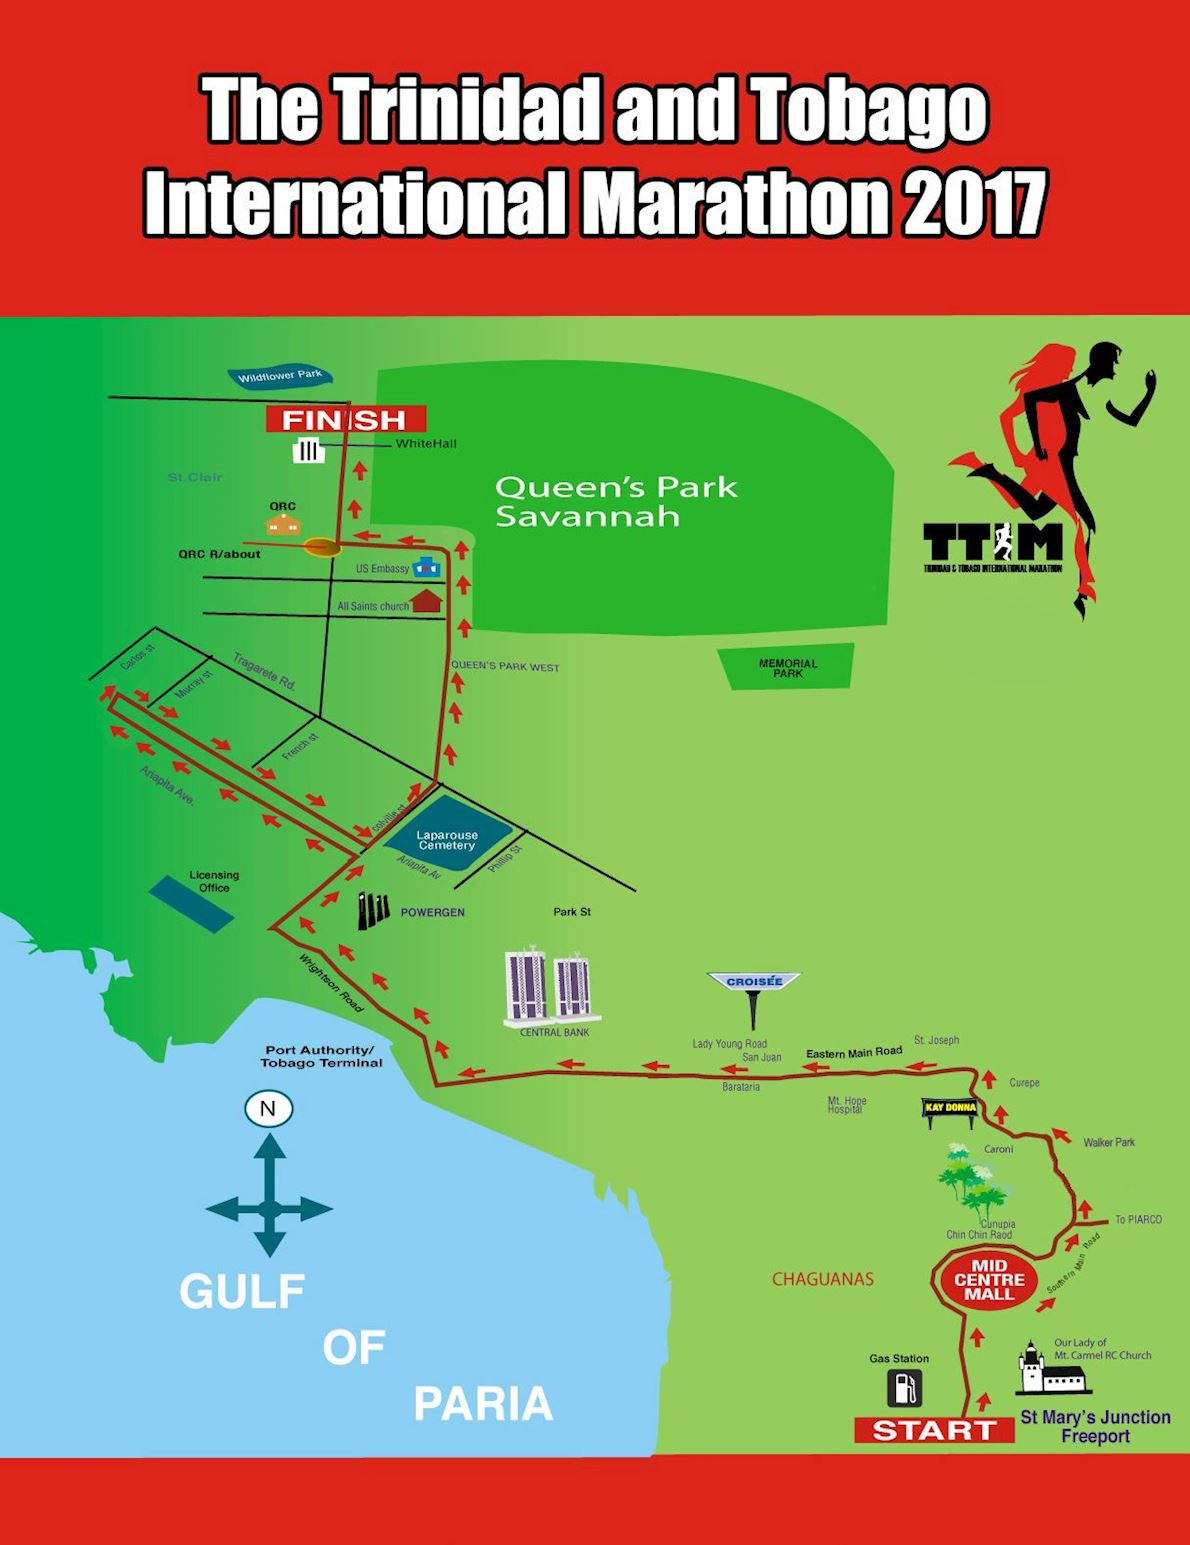 Trinidad and Tobago Marathon Mappa del percorso